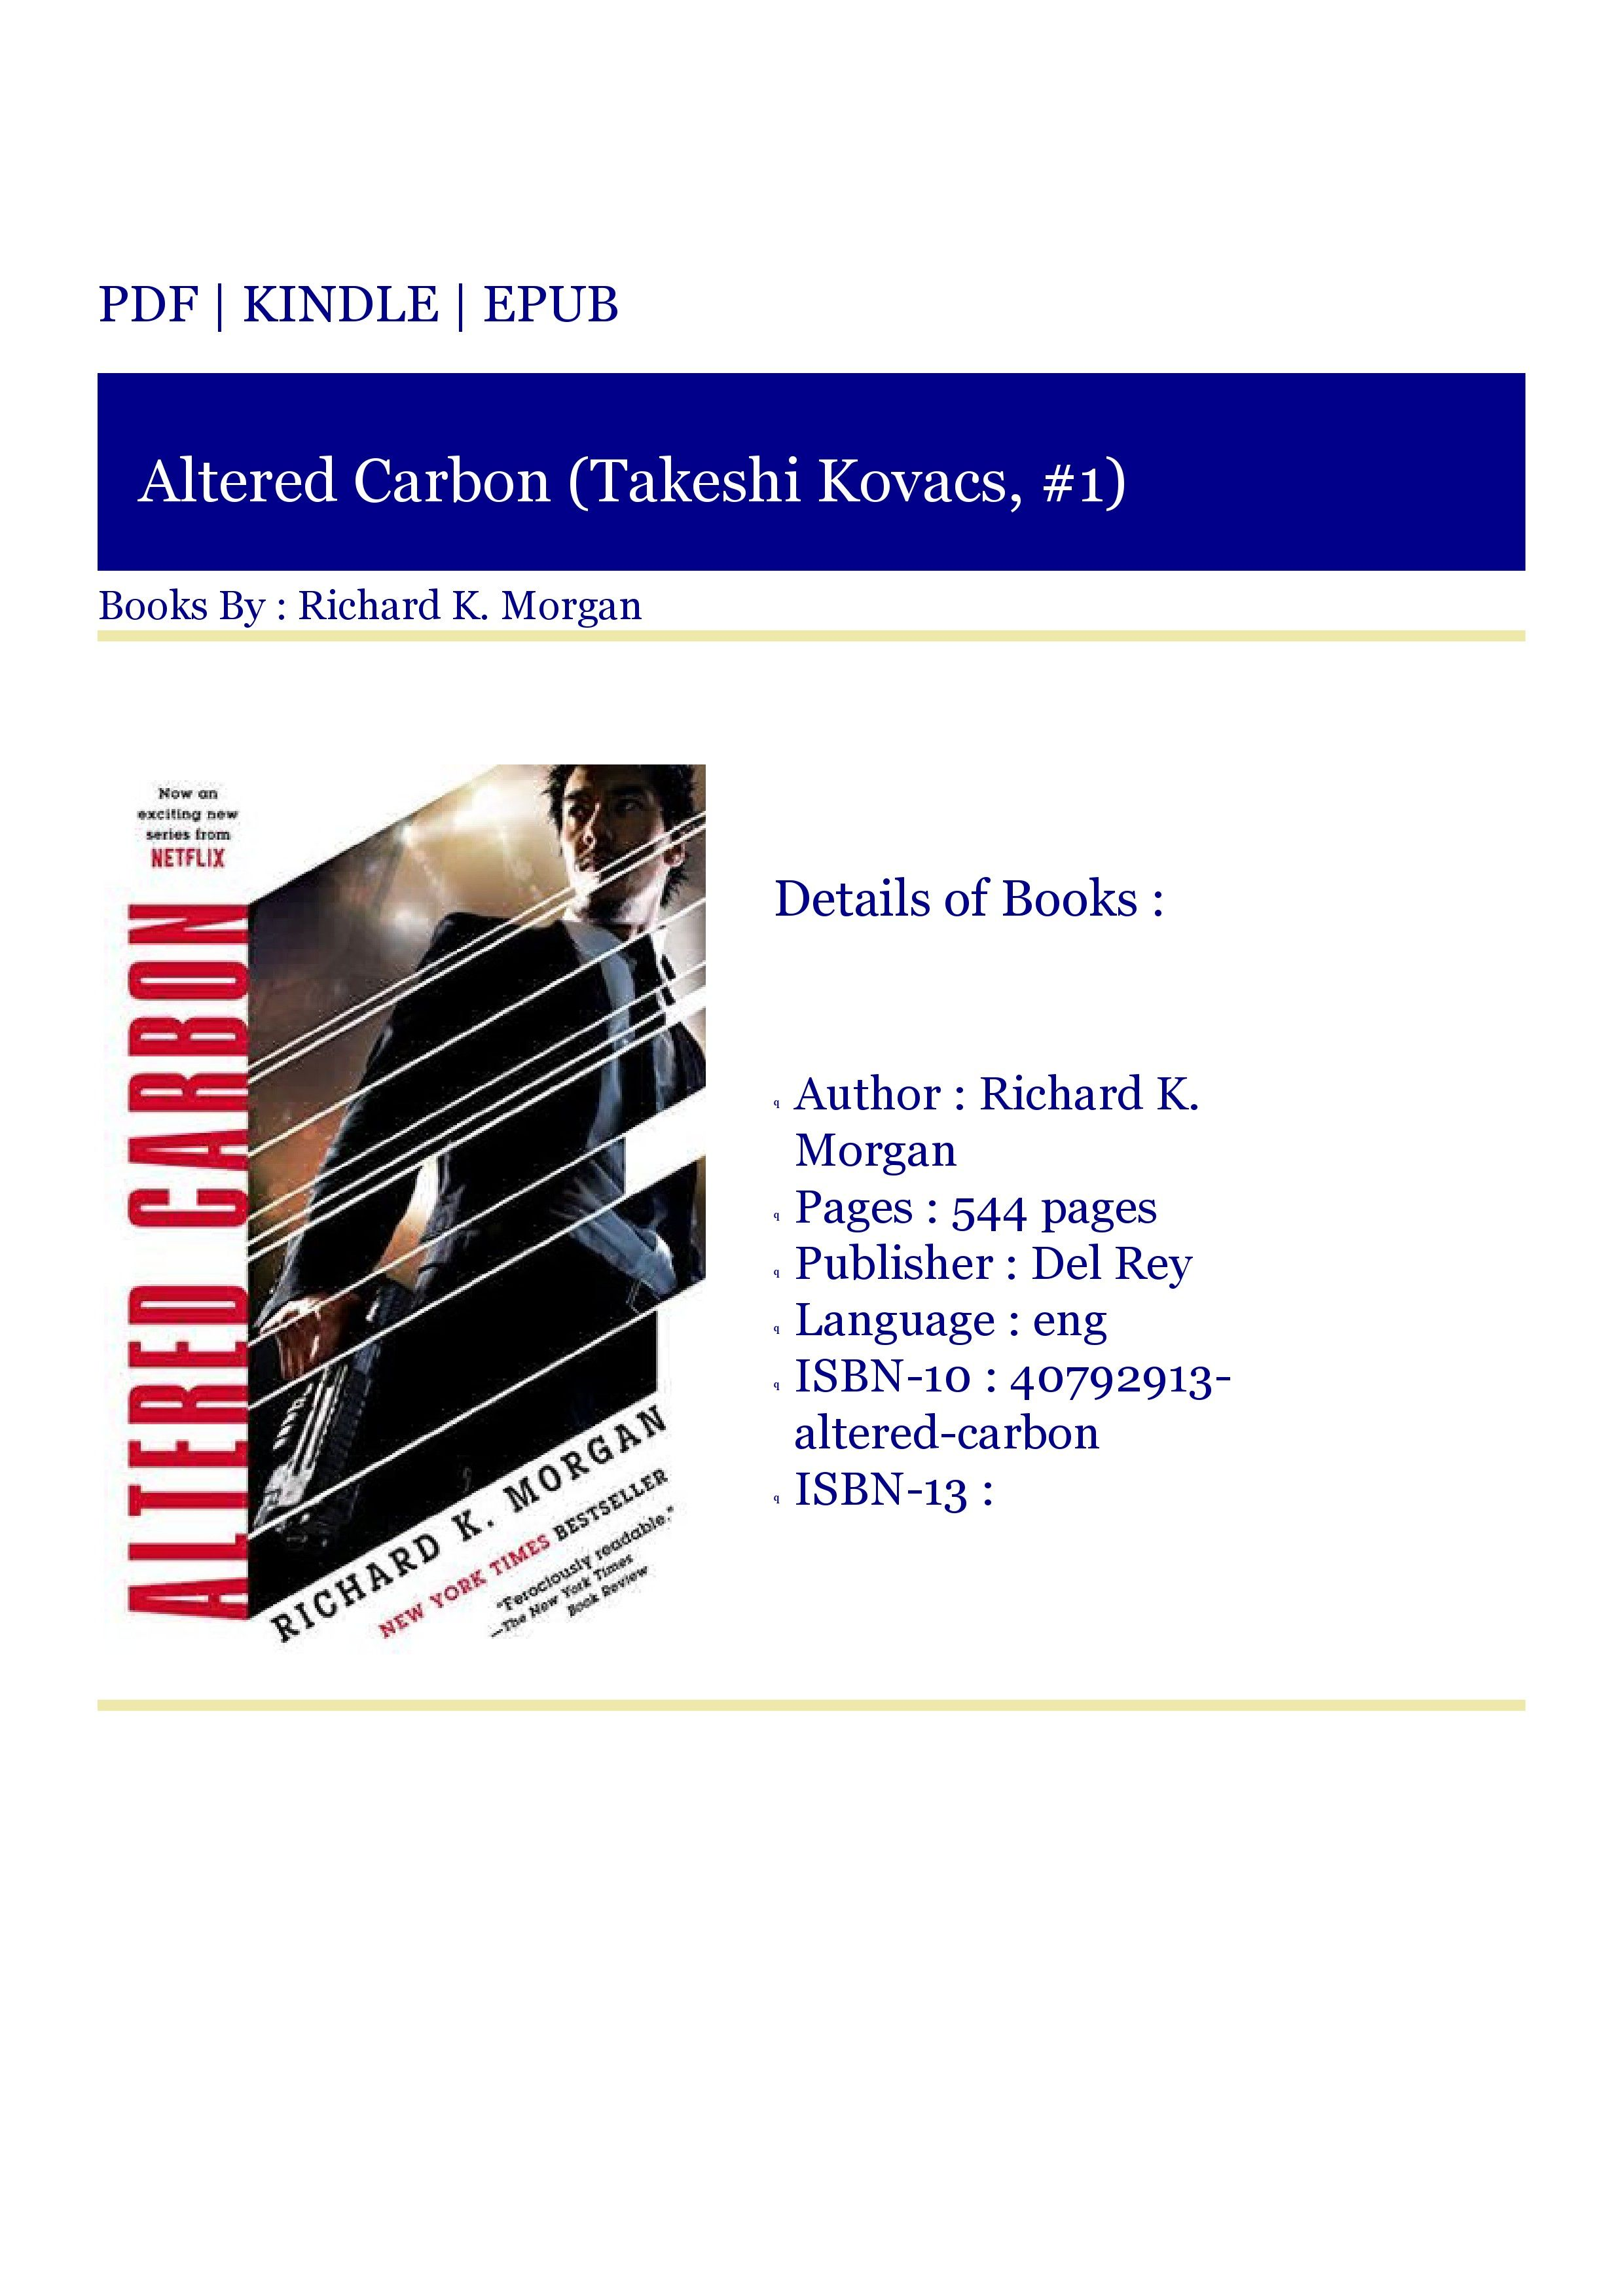 Get Kindle Altered Carbon Takeshi Kovacs 1 In 2020 Altered Carbon Good Books Alters